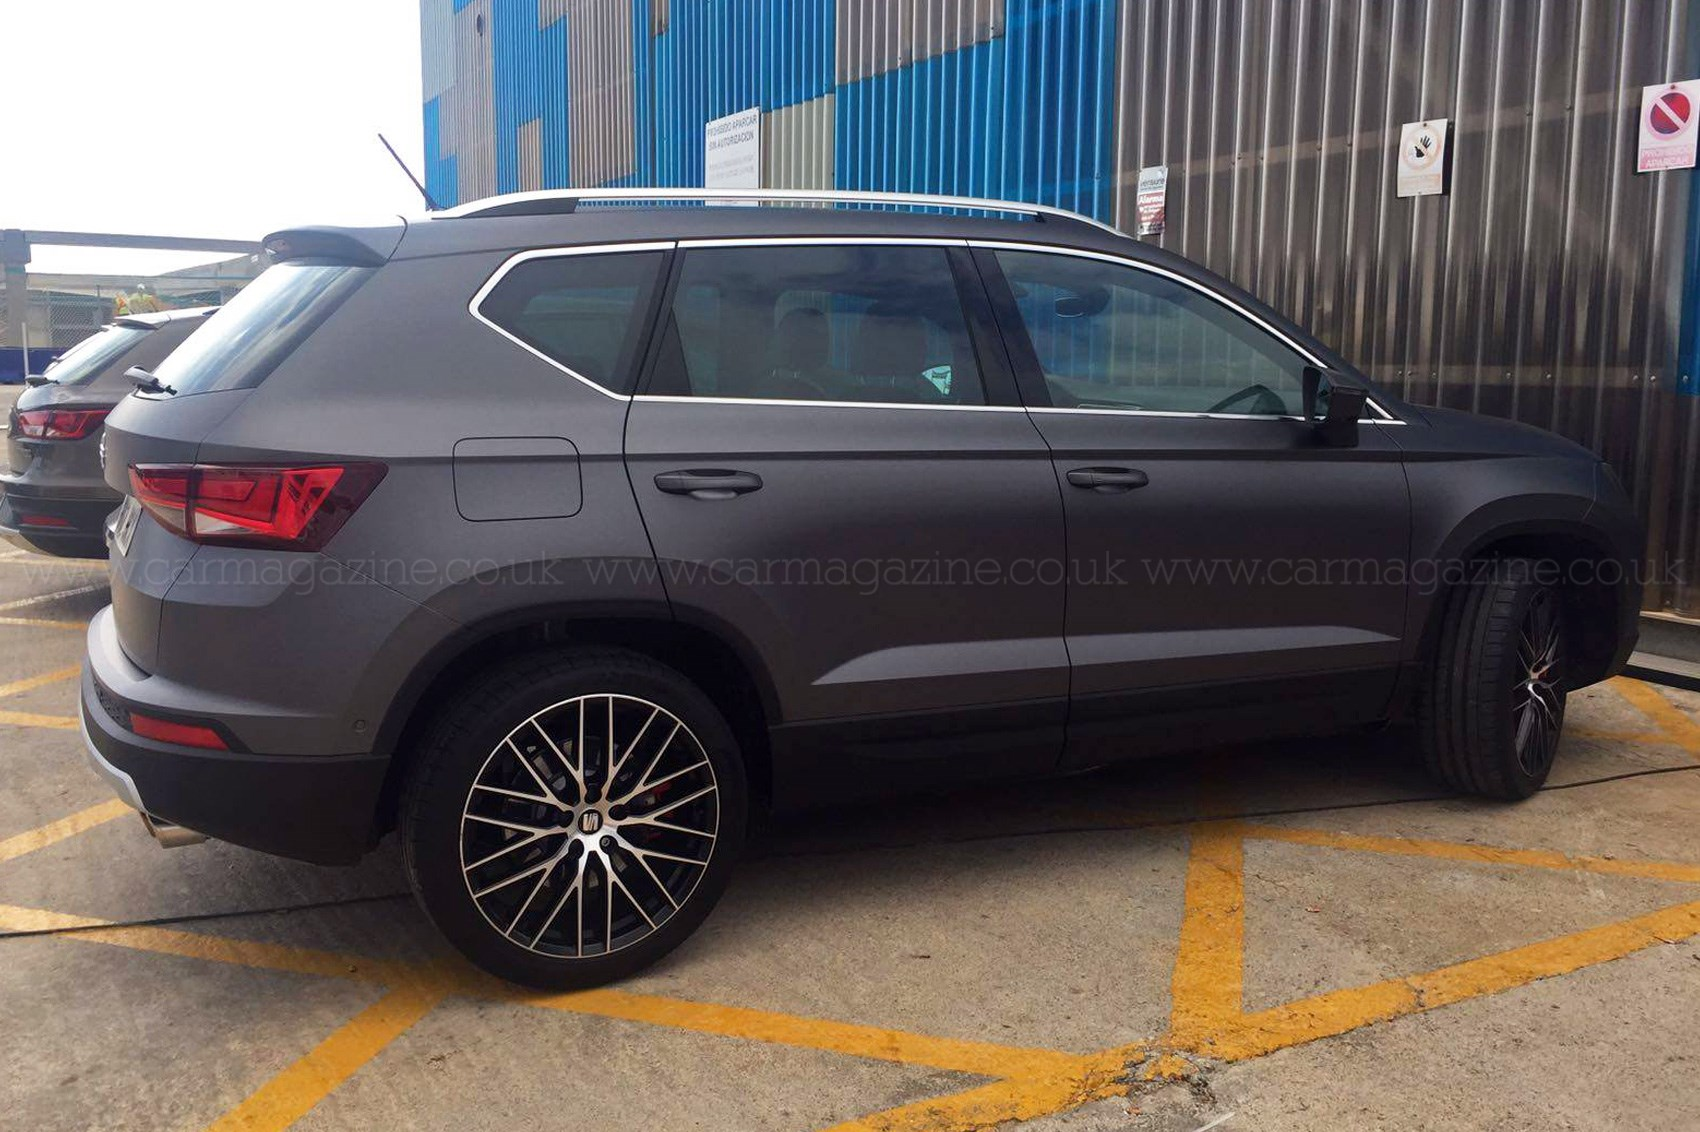 You ain't seen me, right? 2017 Seat Ateca Cupra prototype ...